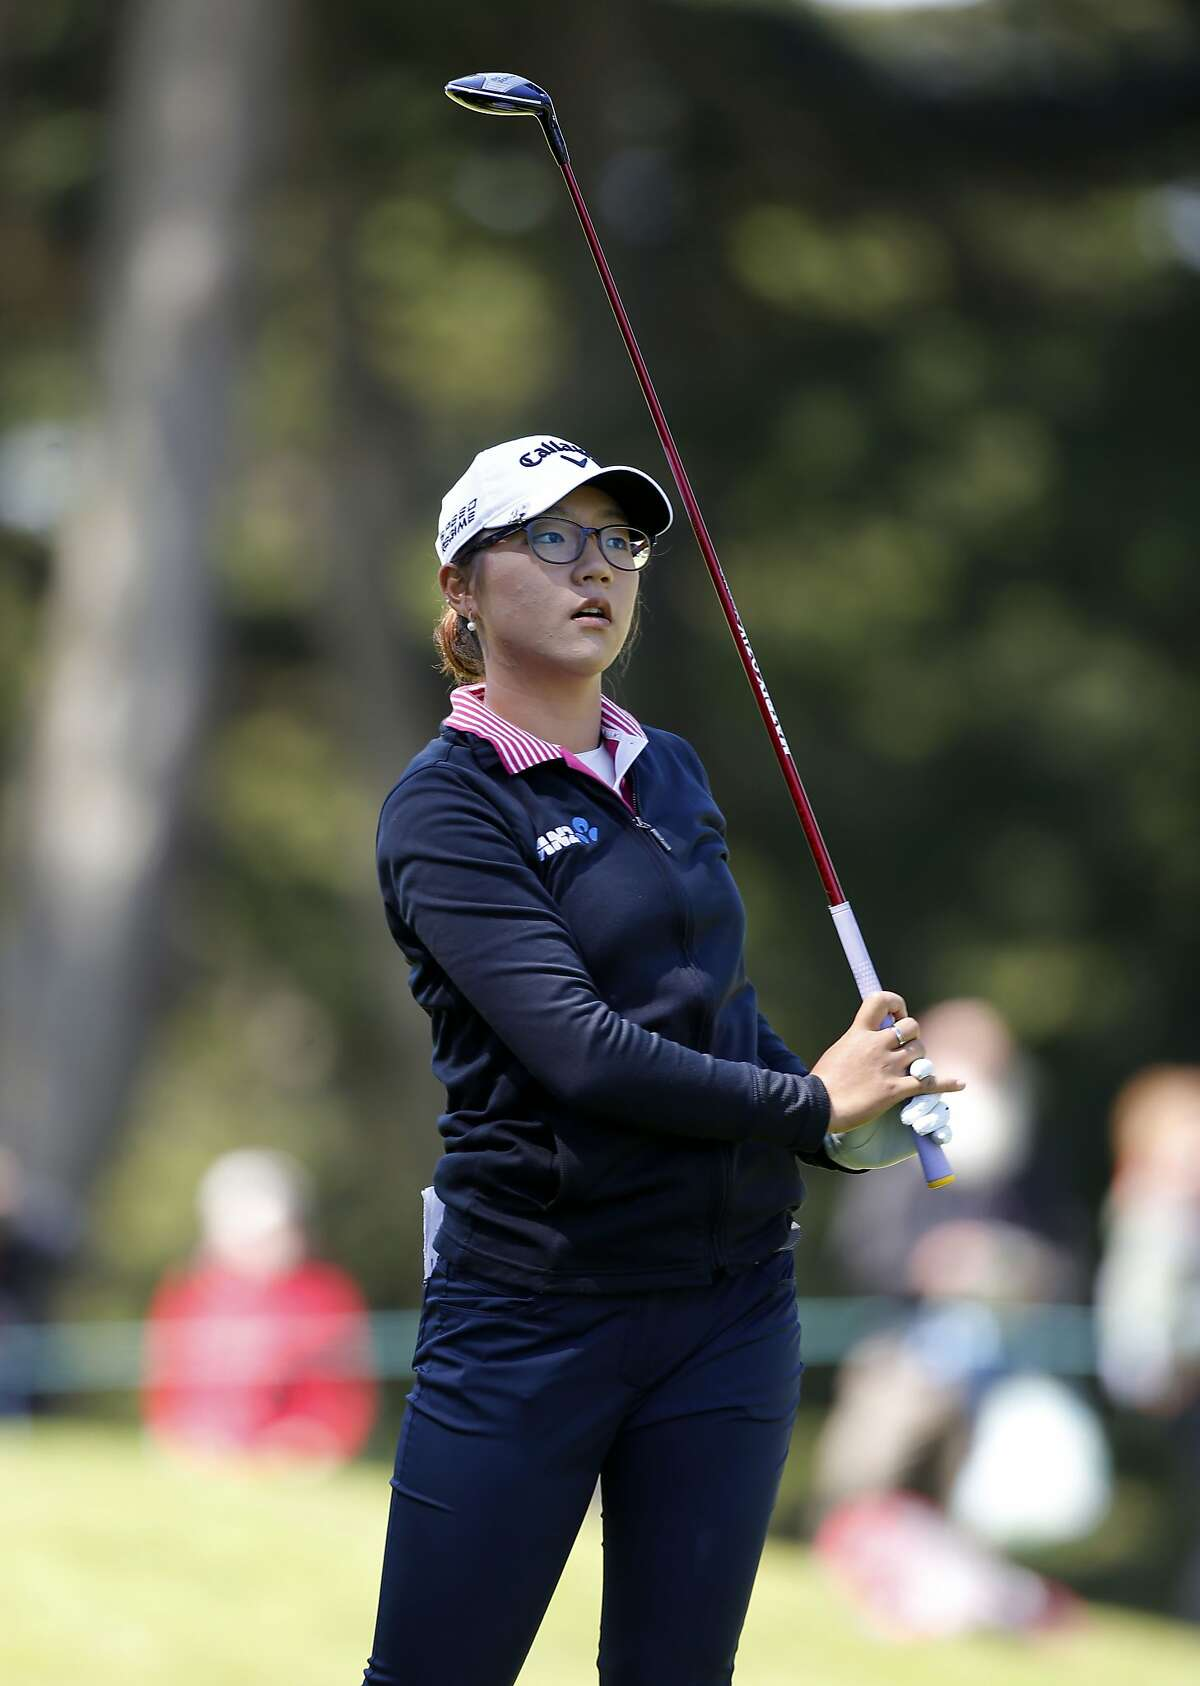 Lydia Ko watches her second shot to the 6th hole, during the final round of the Swinging Skirts LPGA classic at Lake Merced Golf Club in Daly City, Calif., on Sunday April 27, 2014.